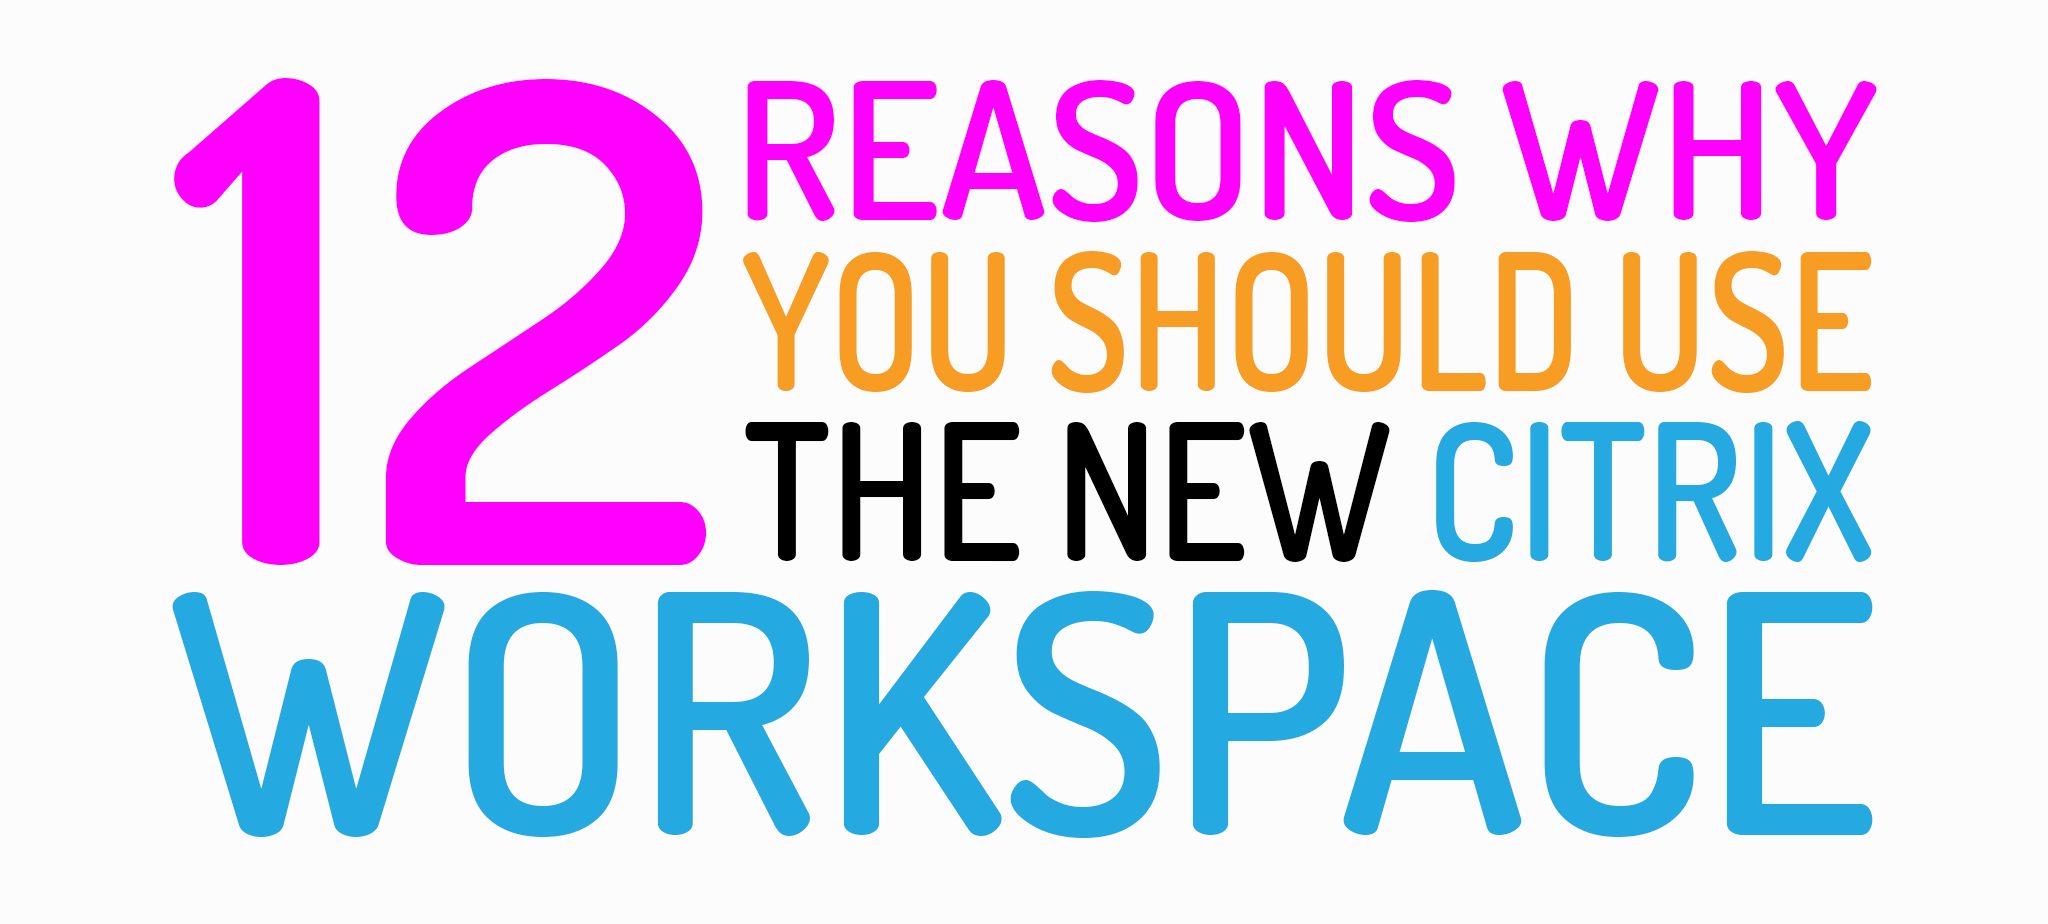 Top 12 Reasons Why You Should Use Citrix Workspace